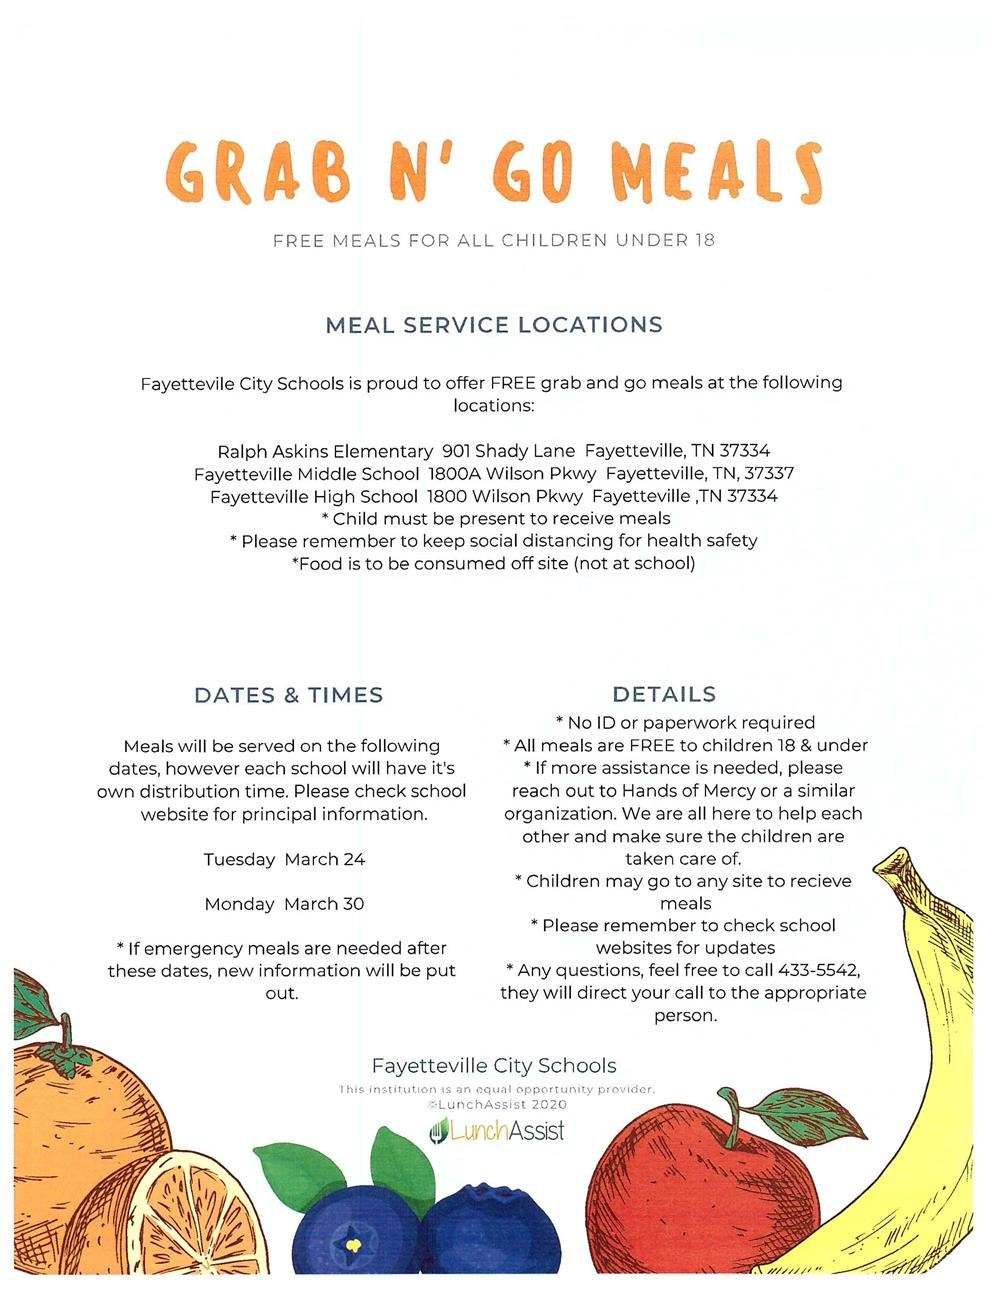 Grab N' Go Meals - FREE meals to all children under 18